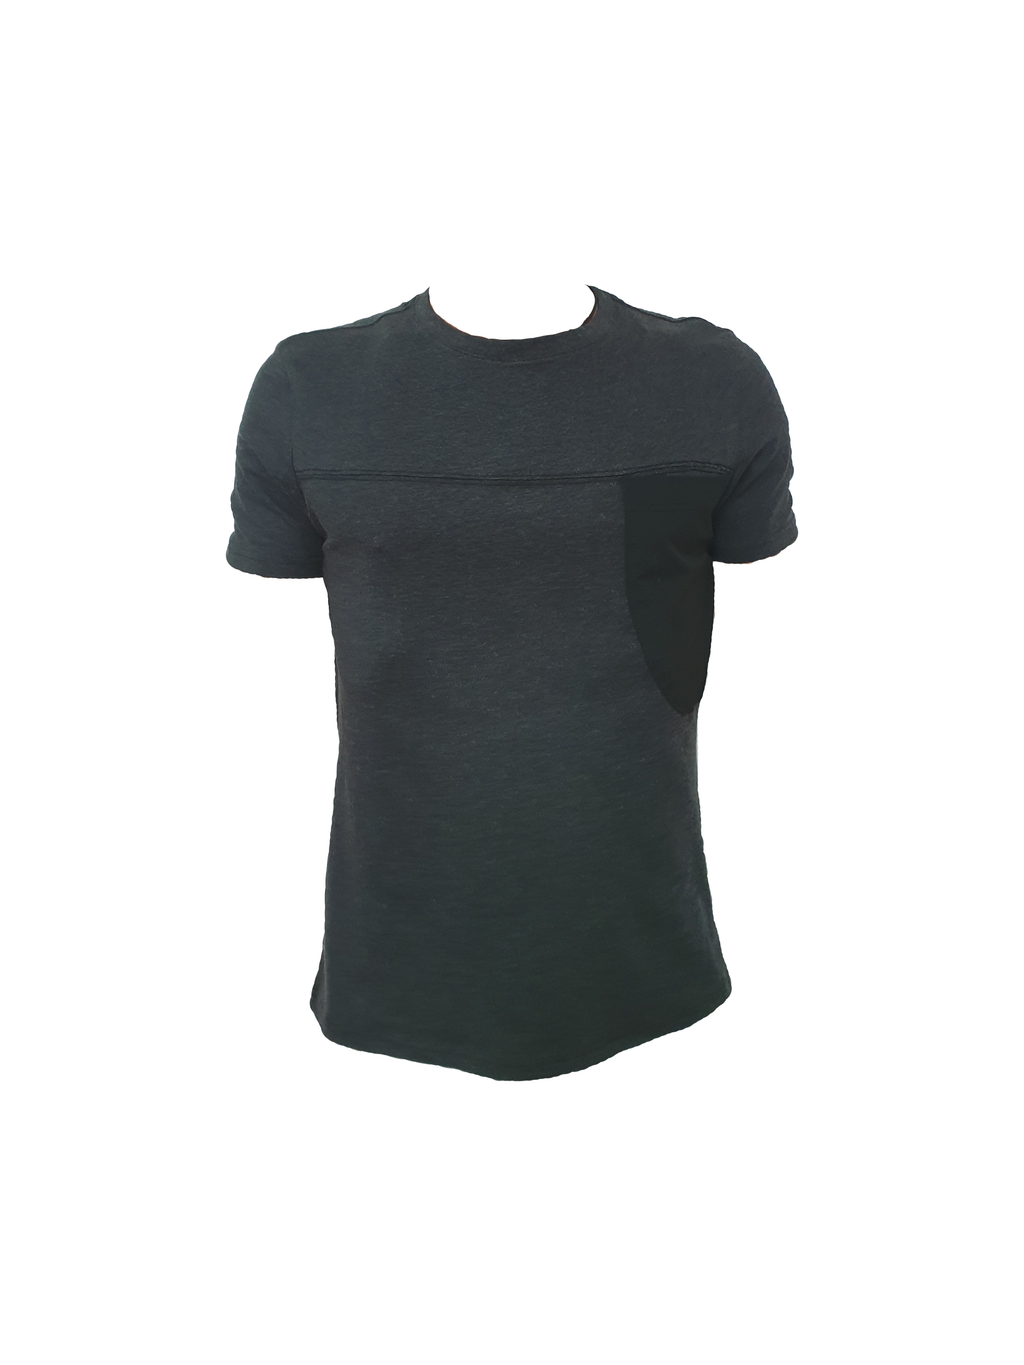 Dark grey or charcoal tee shirt with black pocket - 100% cotton t shirt